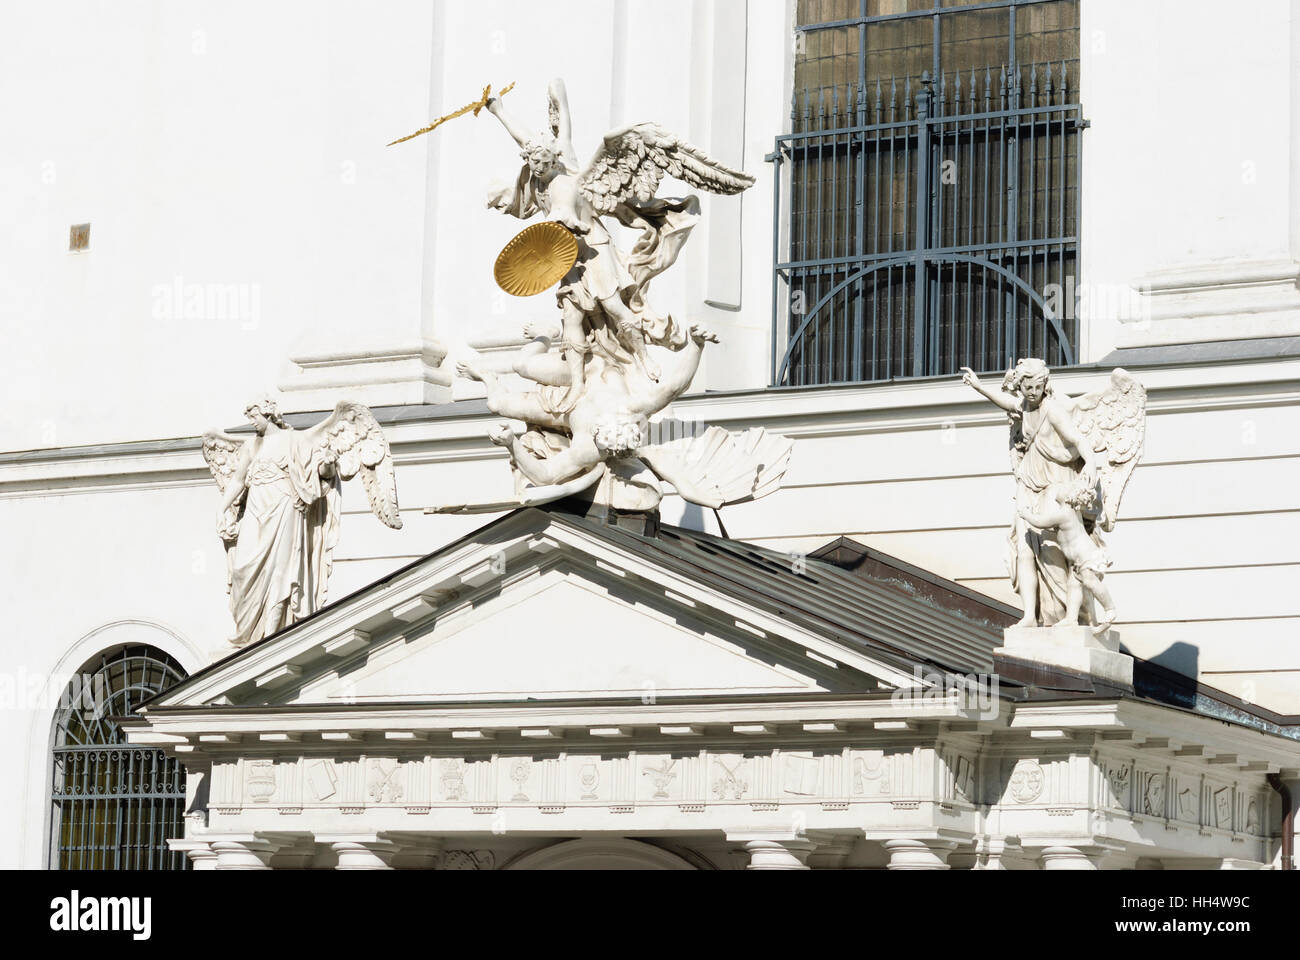 Wien, Vienna: Angelic fall above the entrance of the Church of St. Michael, 01. Old Town, Wien, Austria - Stock Image